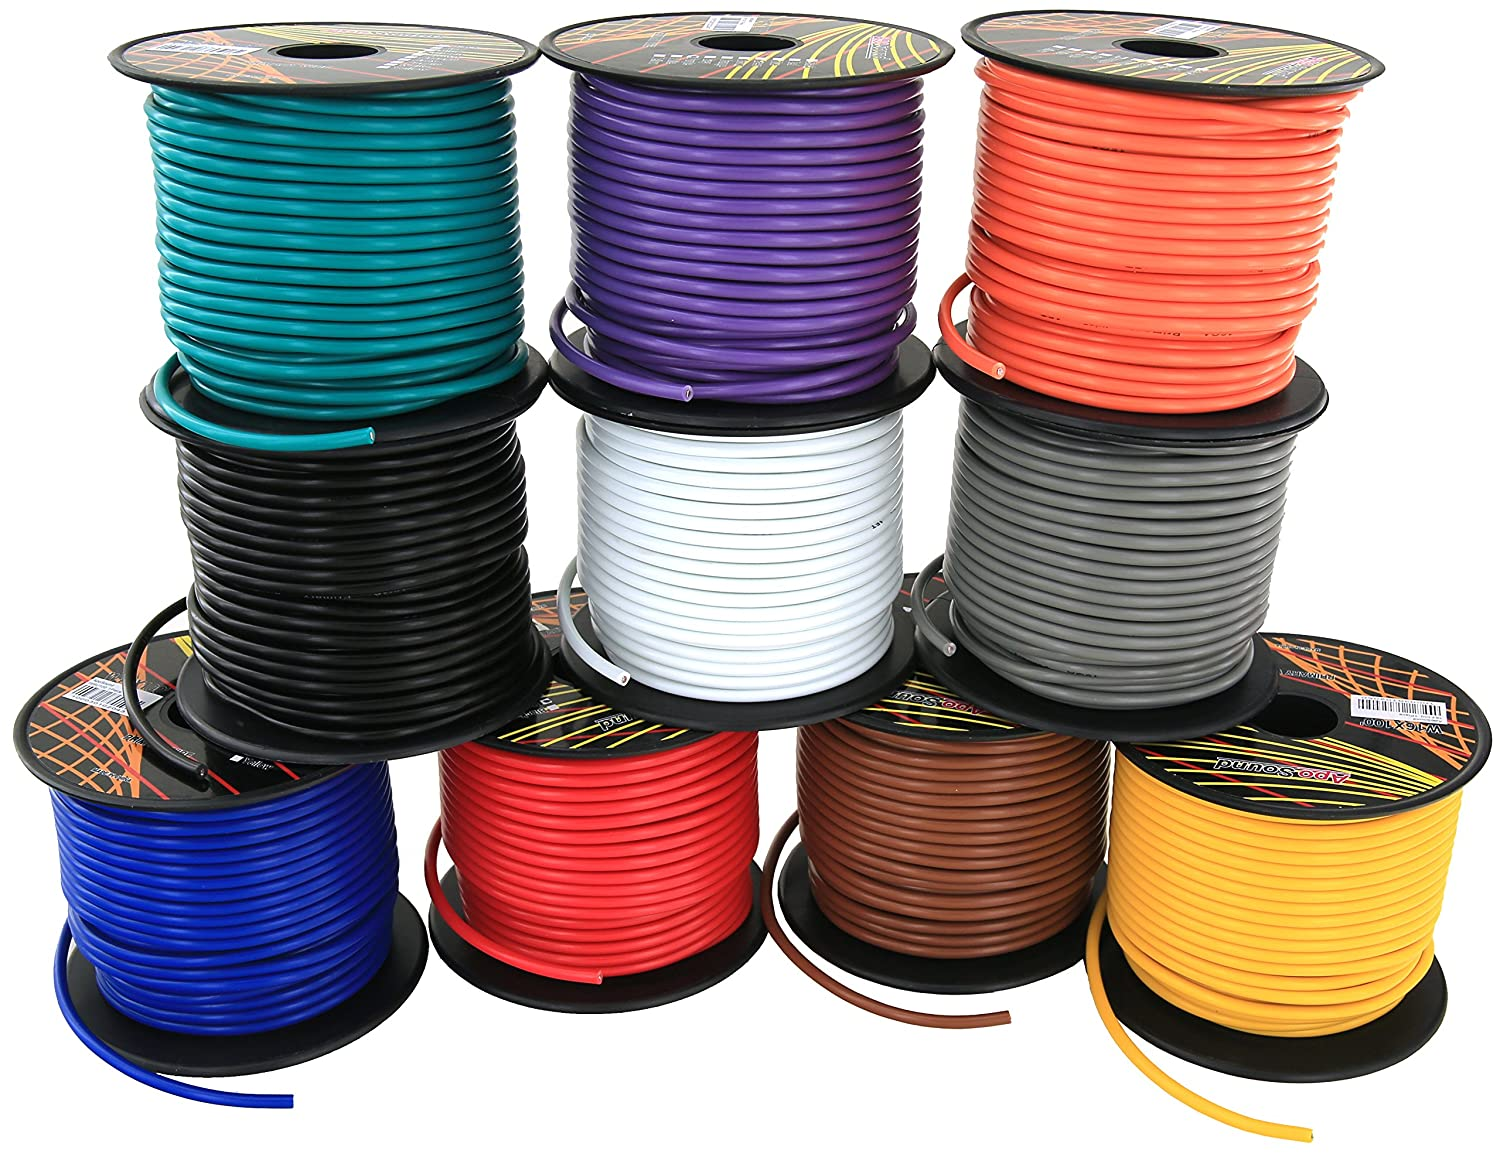 16 Gauge Primary Remote Wire 4 Color Combo | 100 ft/color 400ft total (3 in Product Family: 4, 6 & 10 Color Combo)